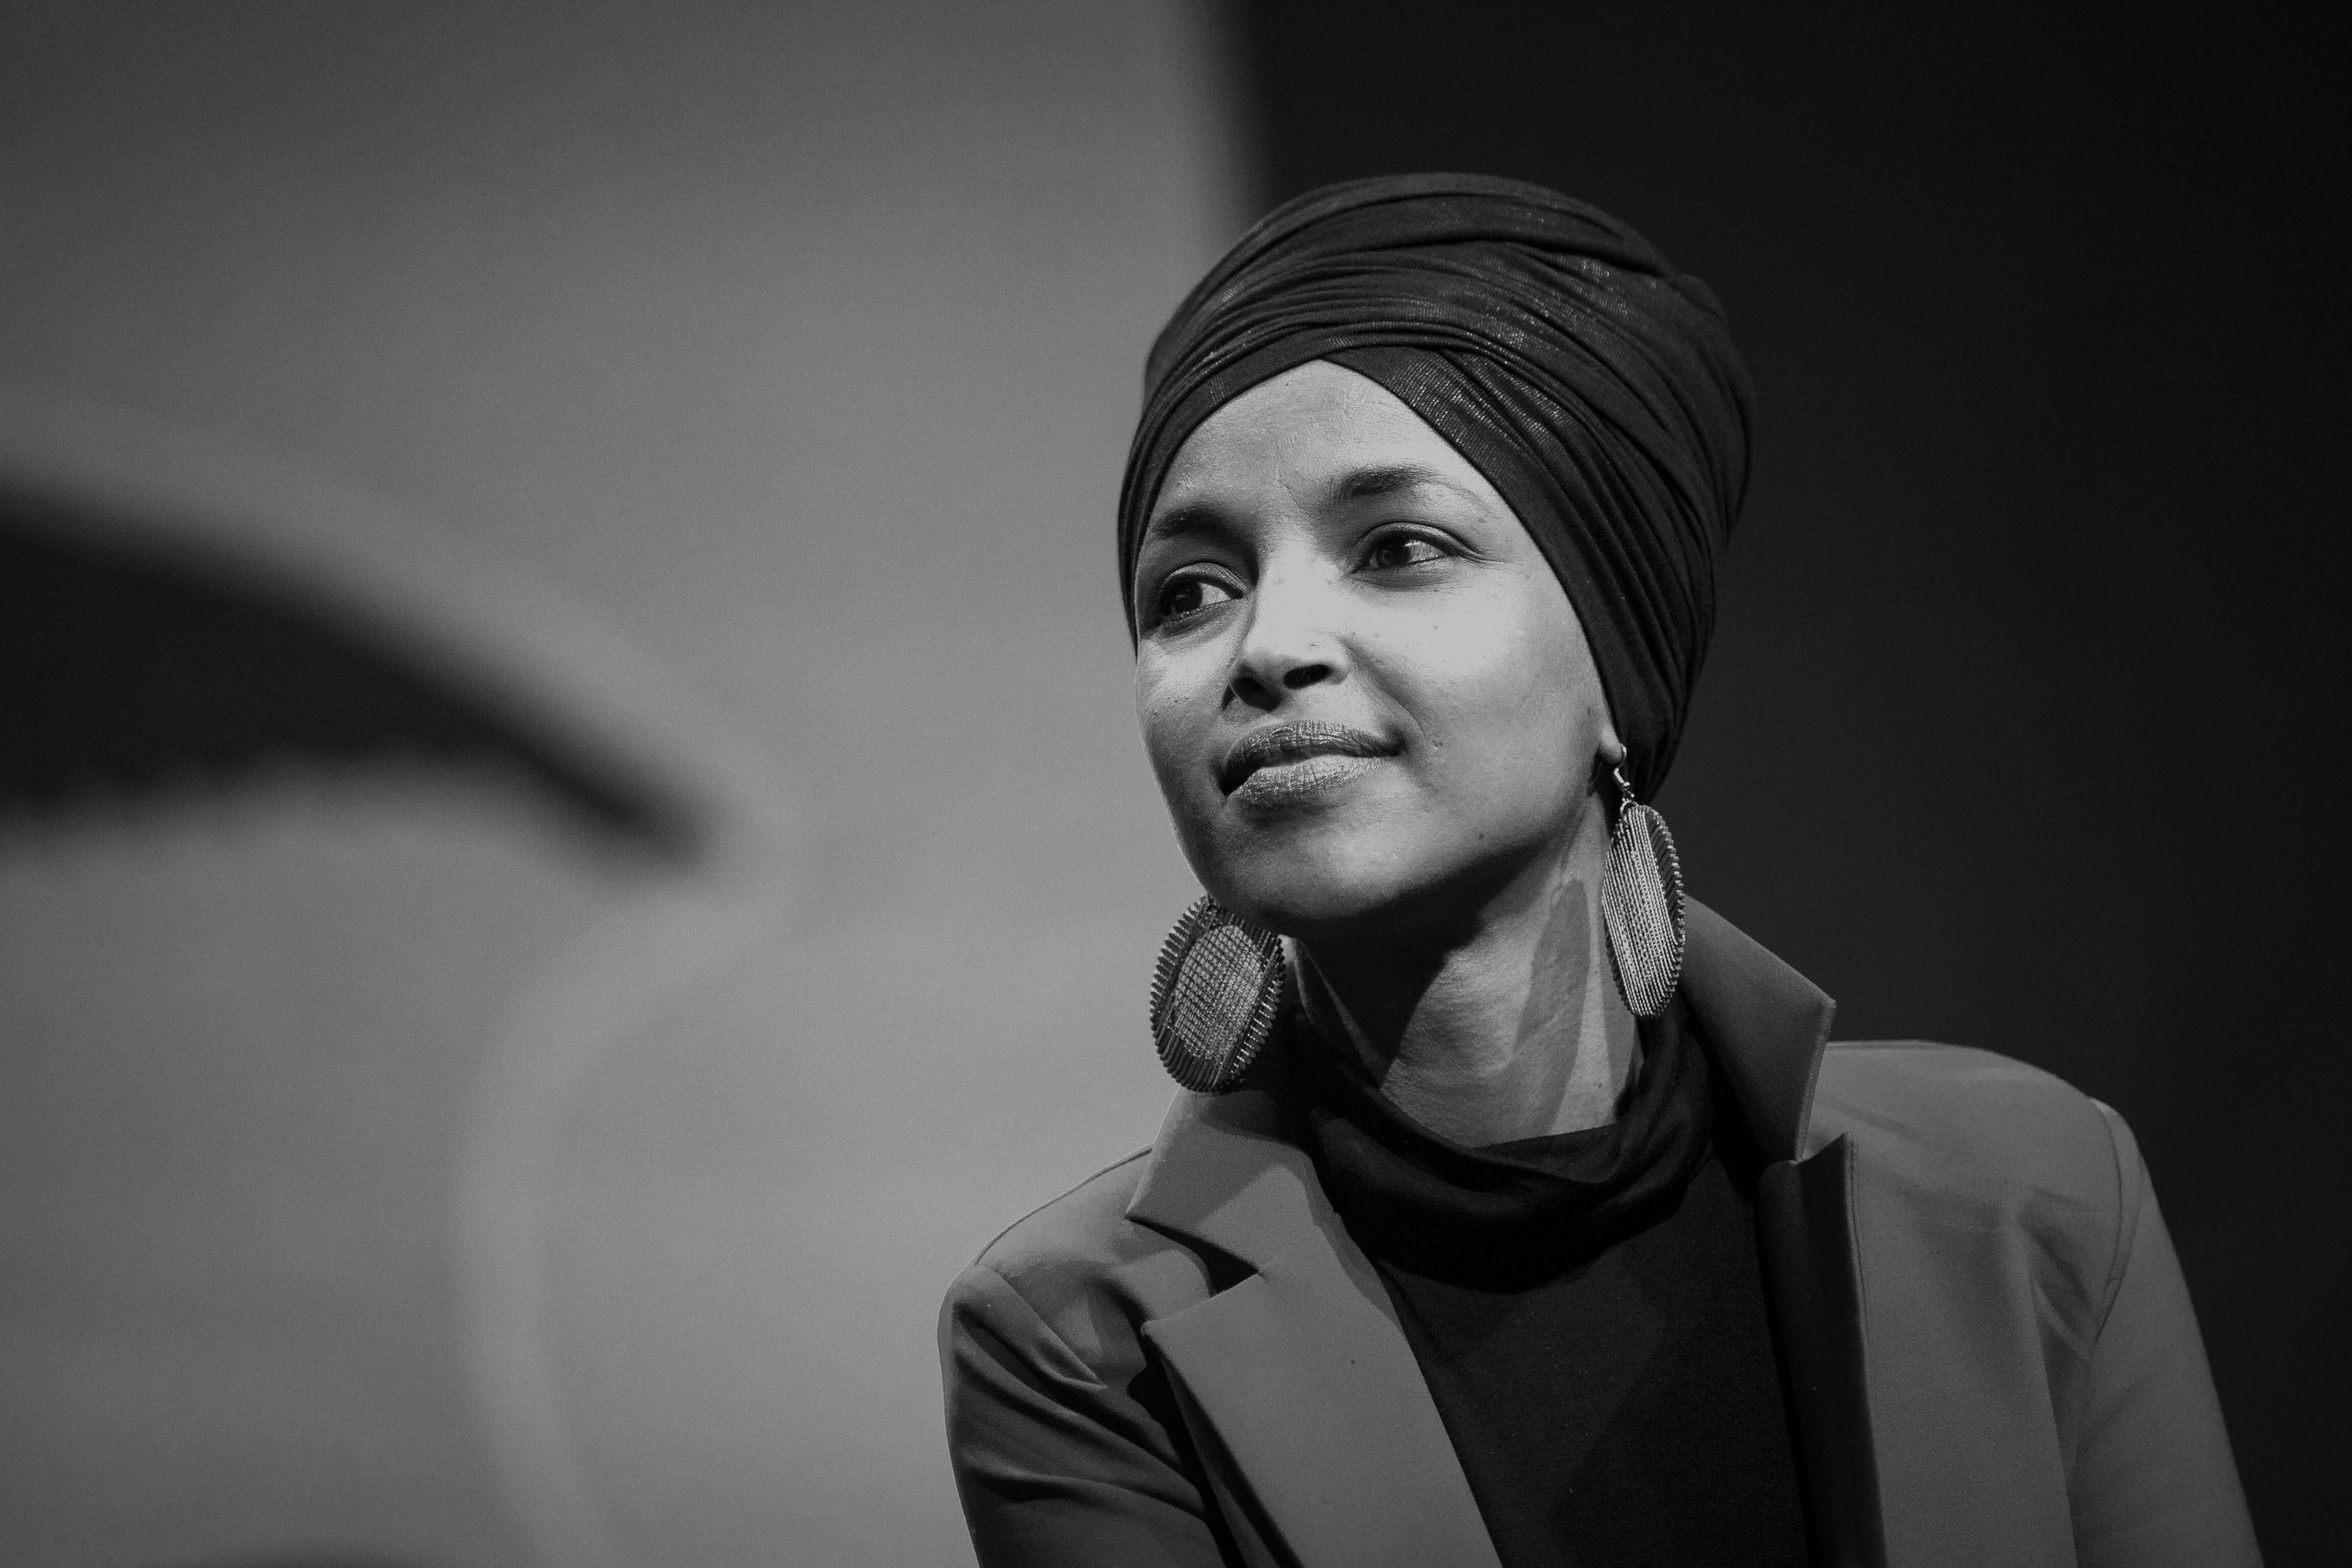 Rep. Ilhan Omar has been a frequent target of Trump's racist and Islamophobic rhetoric.